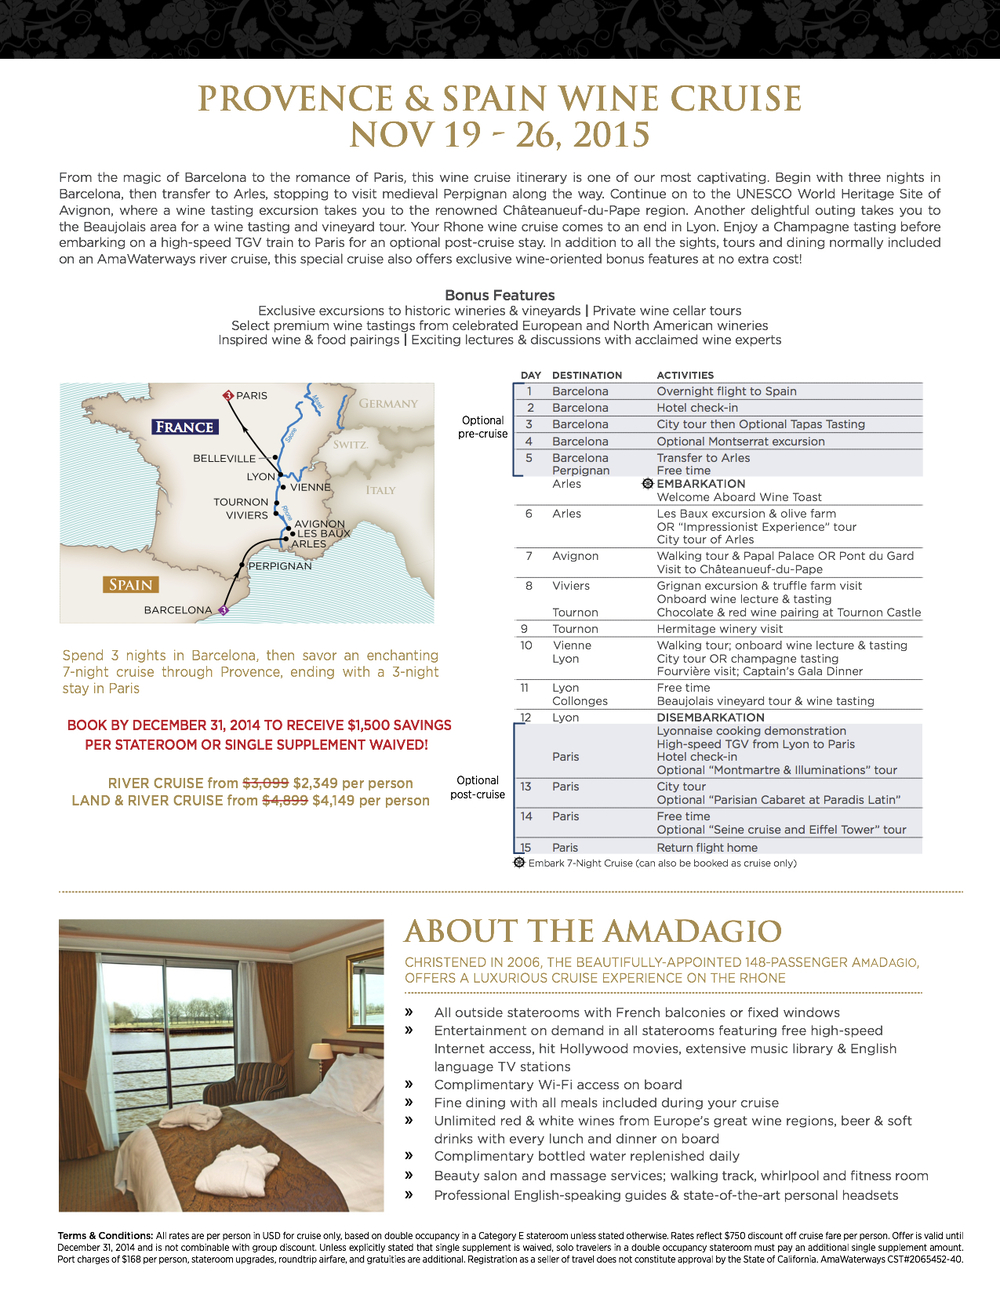 wine-cruise-page 2